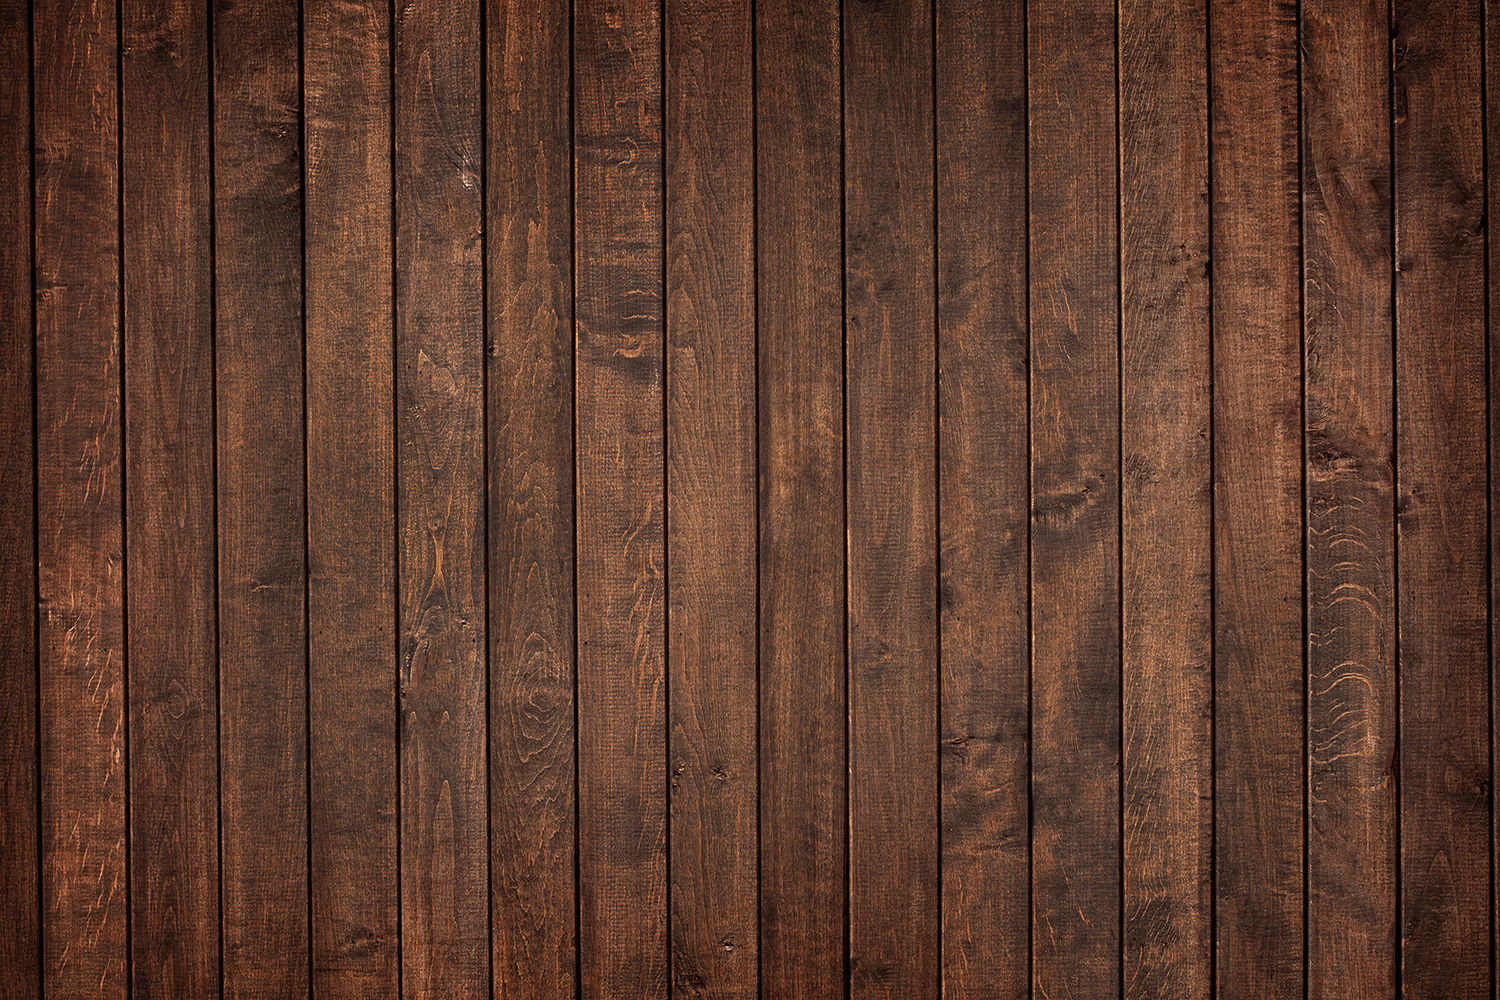 Dark wood mahogany background